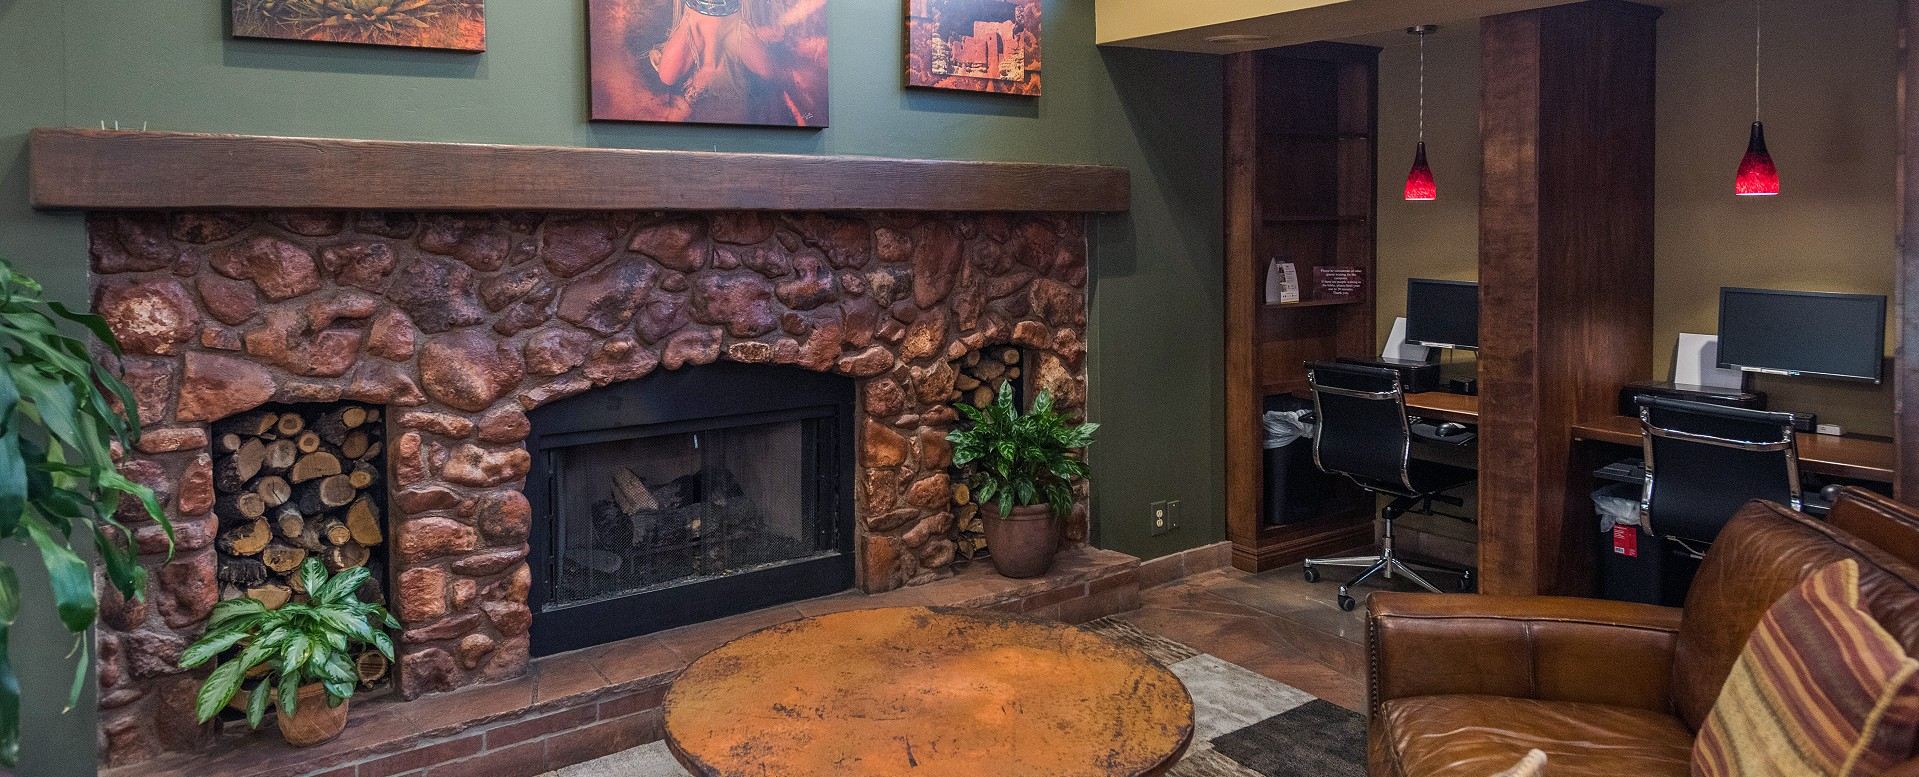 Best Western Plus Inn of Sedona-Lobby Sitting Area with Business Center